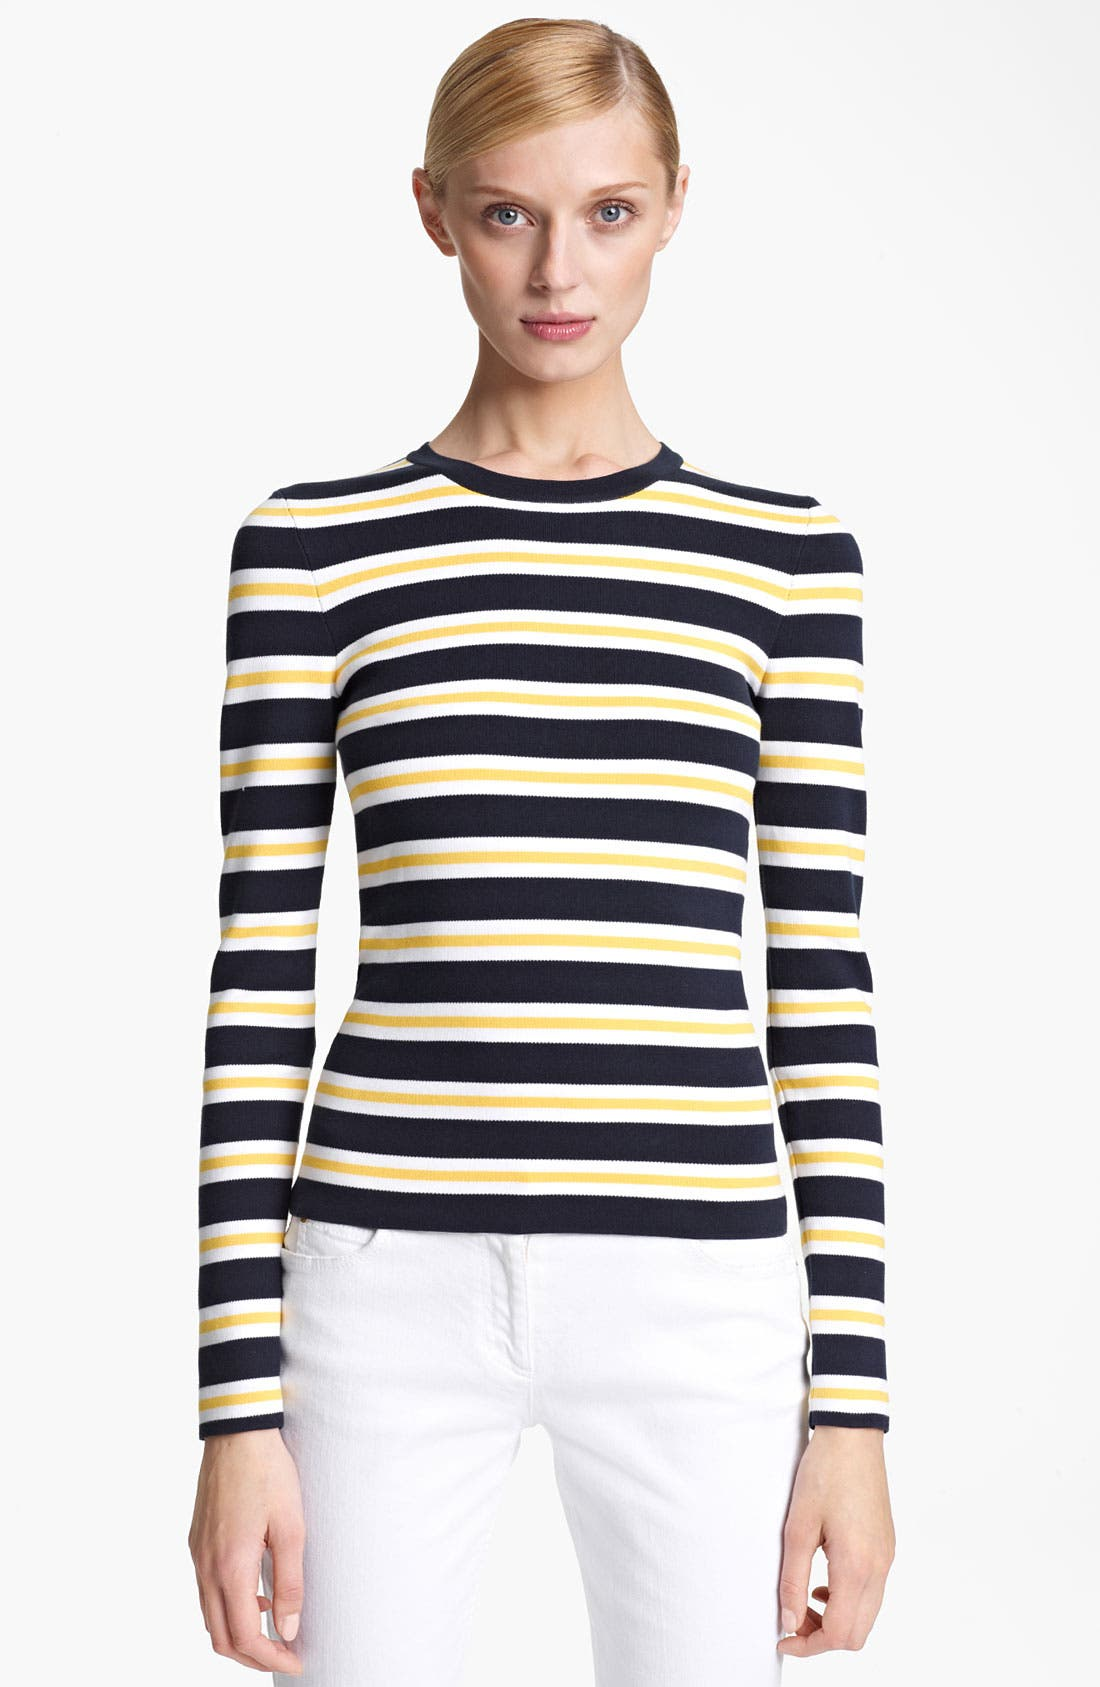 Alternate Image 1 Selected - Michael Kors Stripe Tee